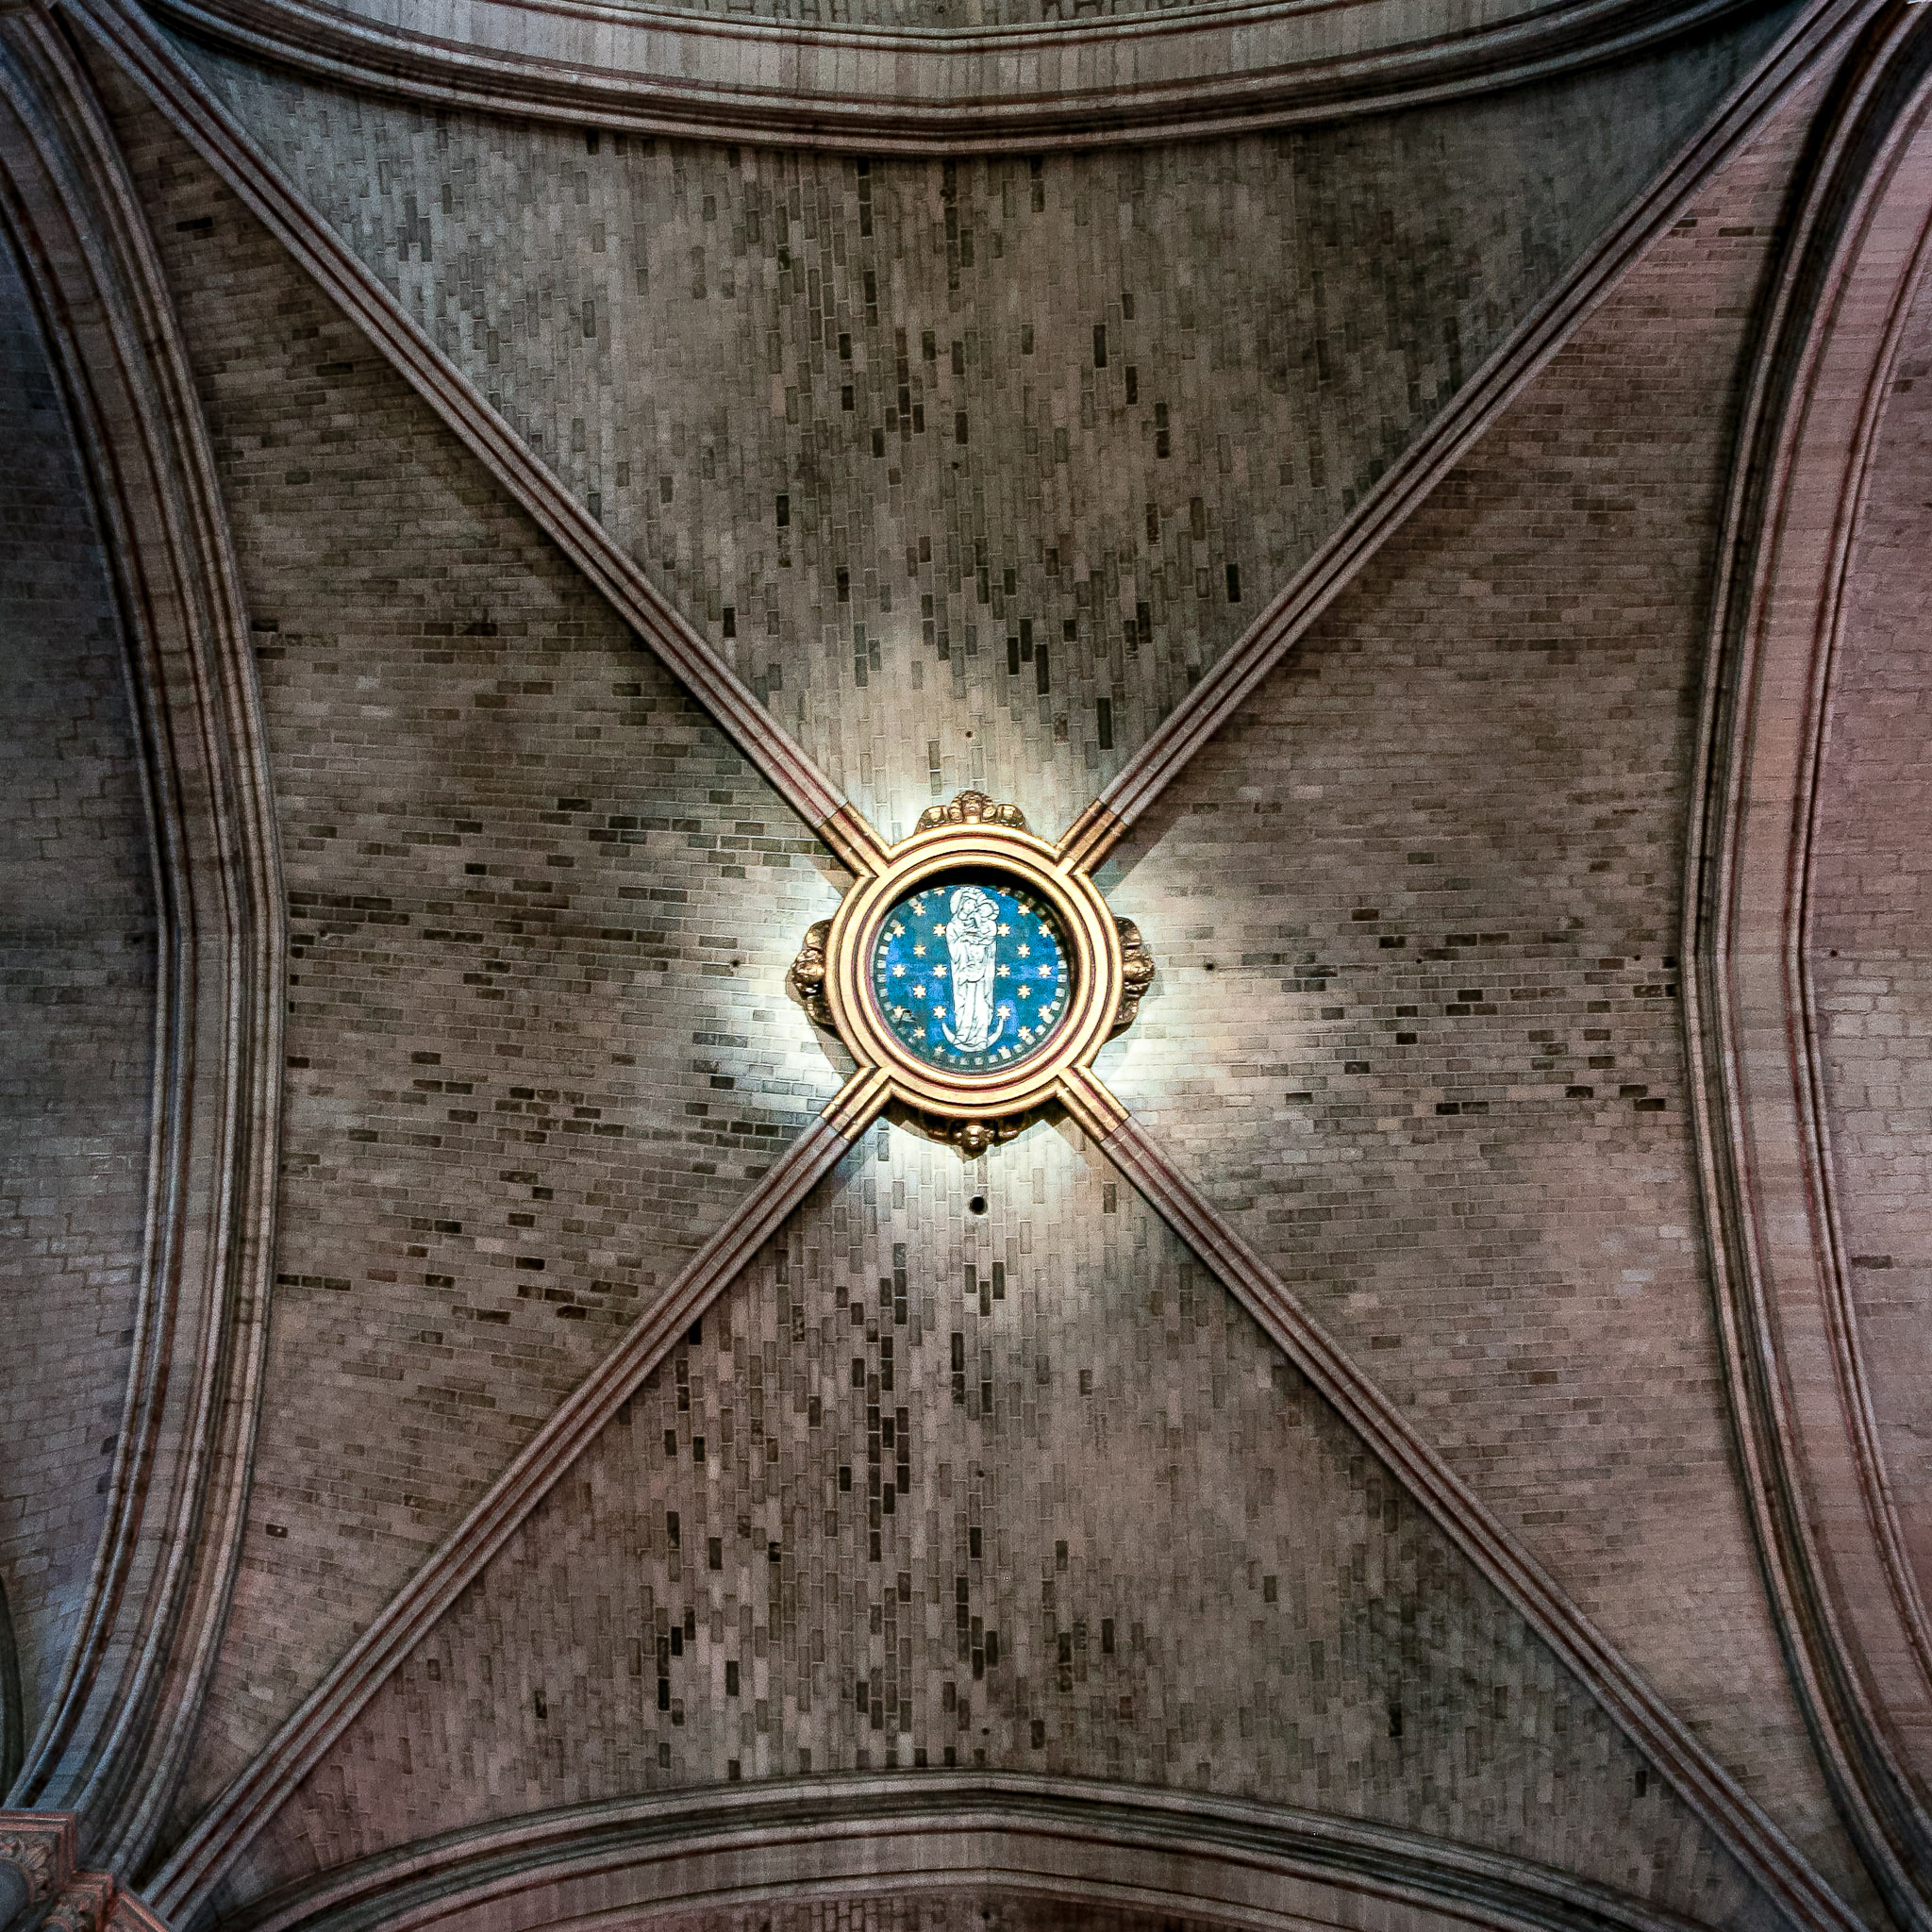 Notre Dame ceiling, photo by Matt Giraud